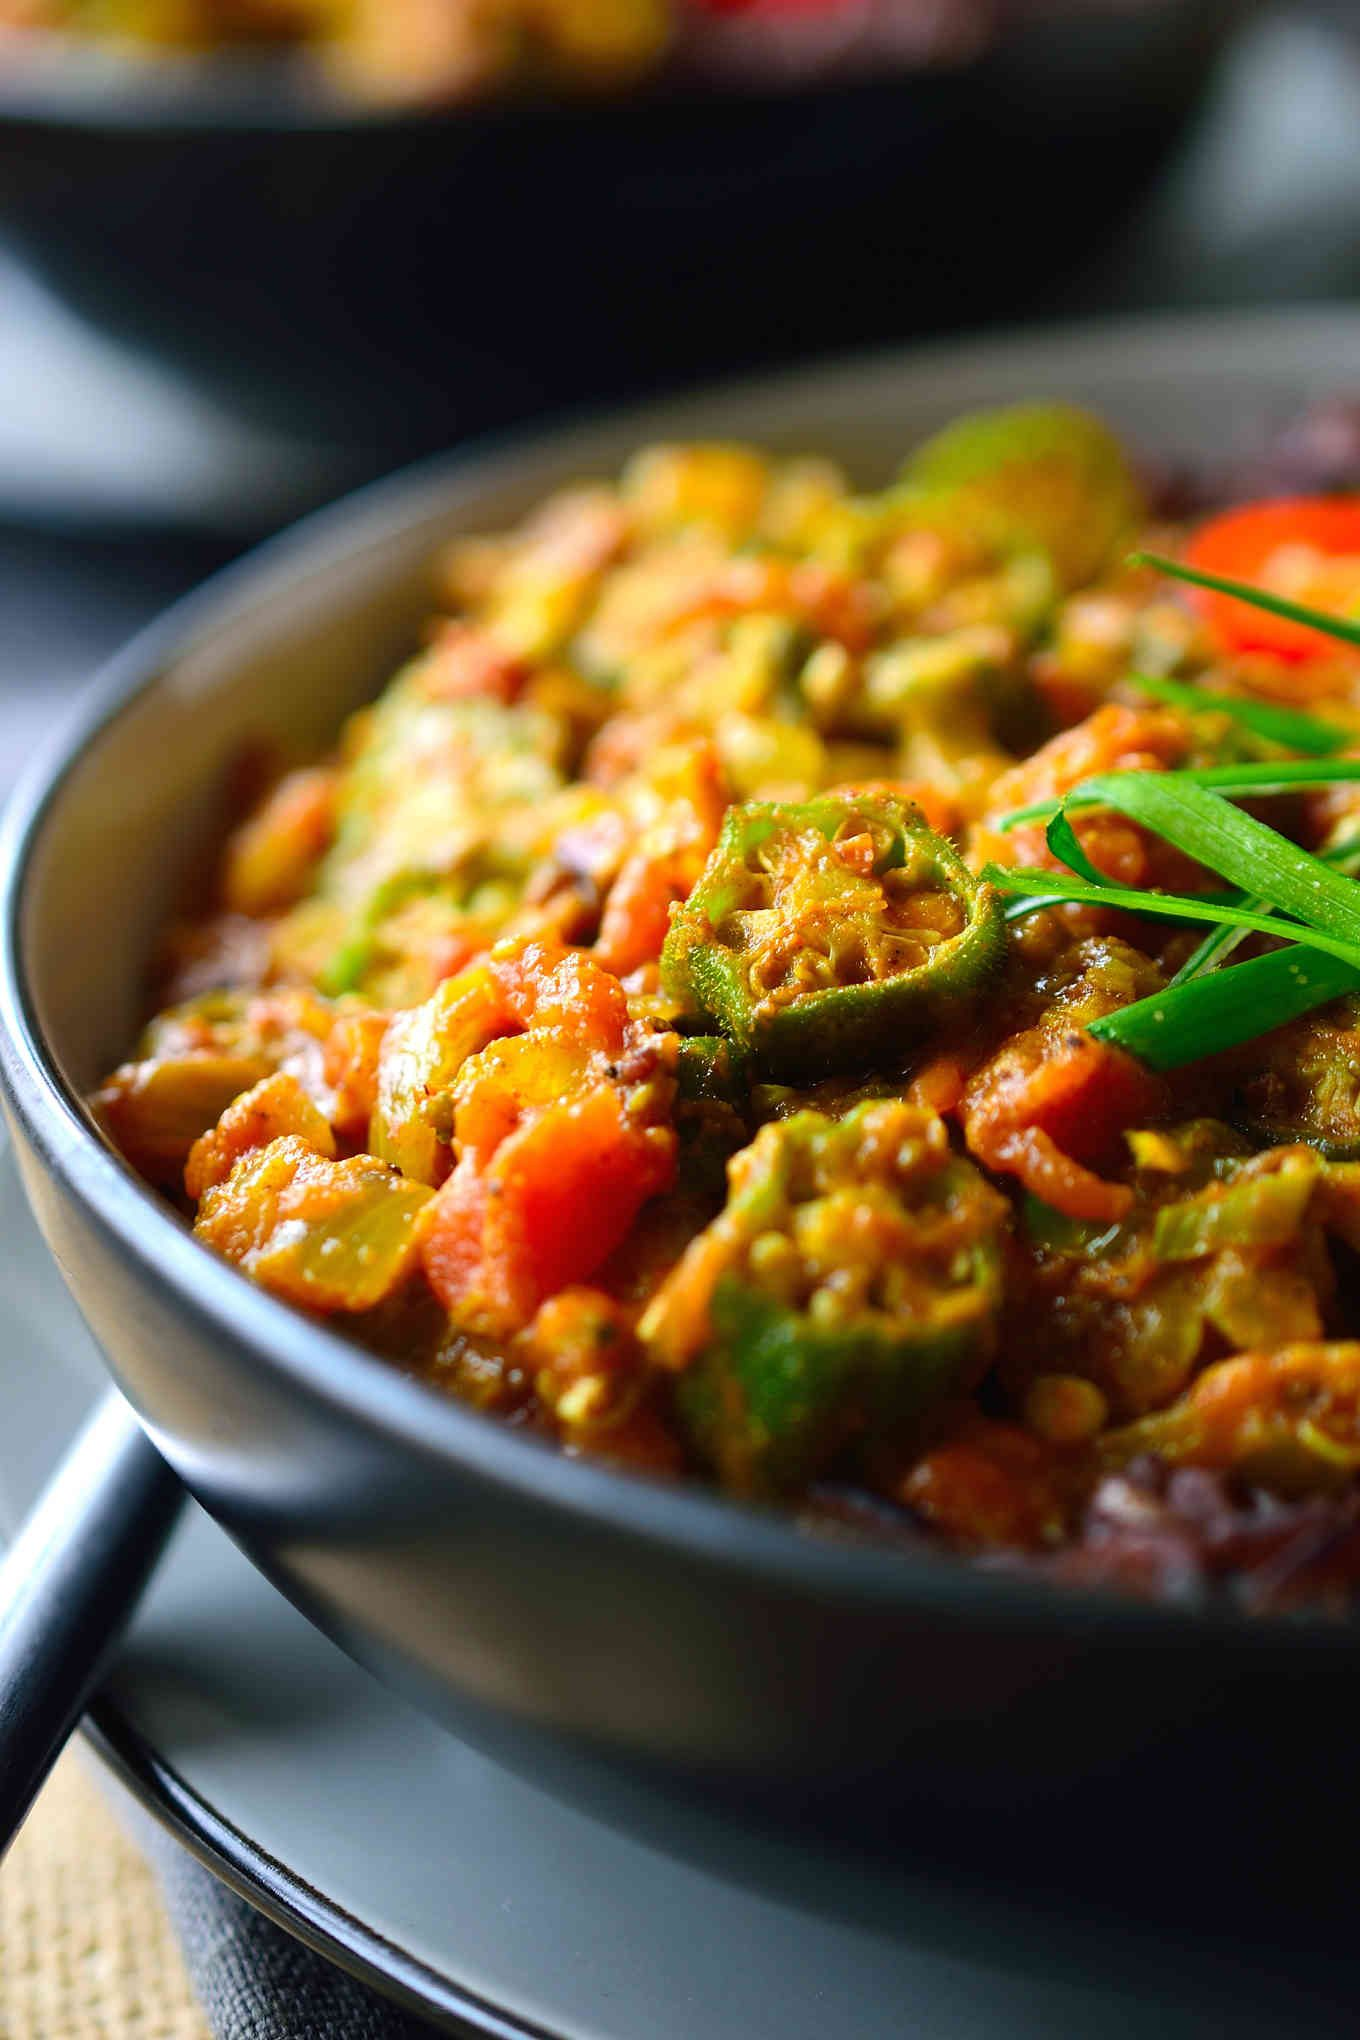 This curried okra recipe, or bhindi masala, is a simple semi-dry curry featuring fried okra in a fragrantly-spiced tomato-based sauce. You'll need just a few ingredients, a selection of Indian spices and about 20 minutes to get this vegan okra curry on the table.